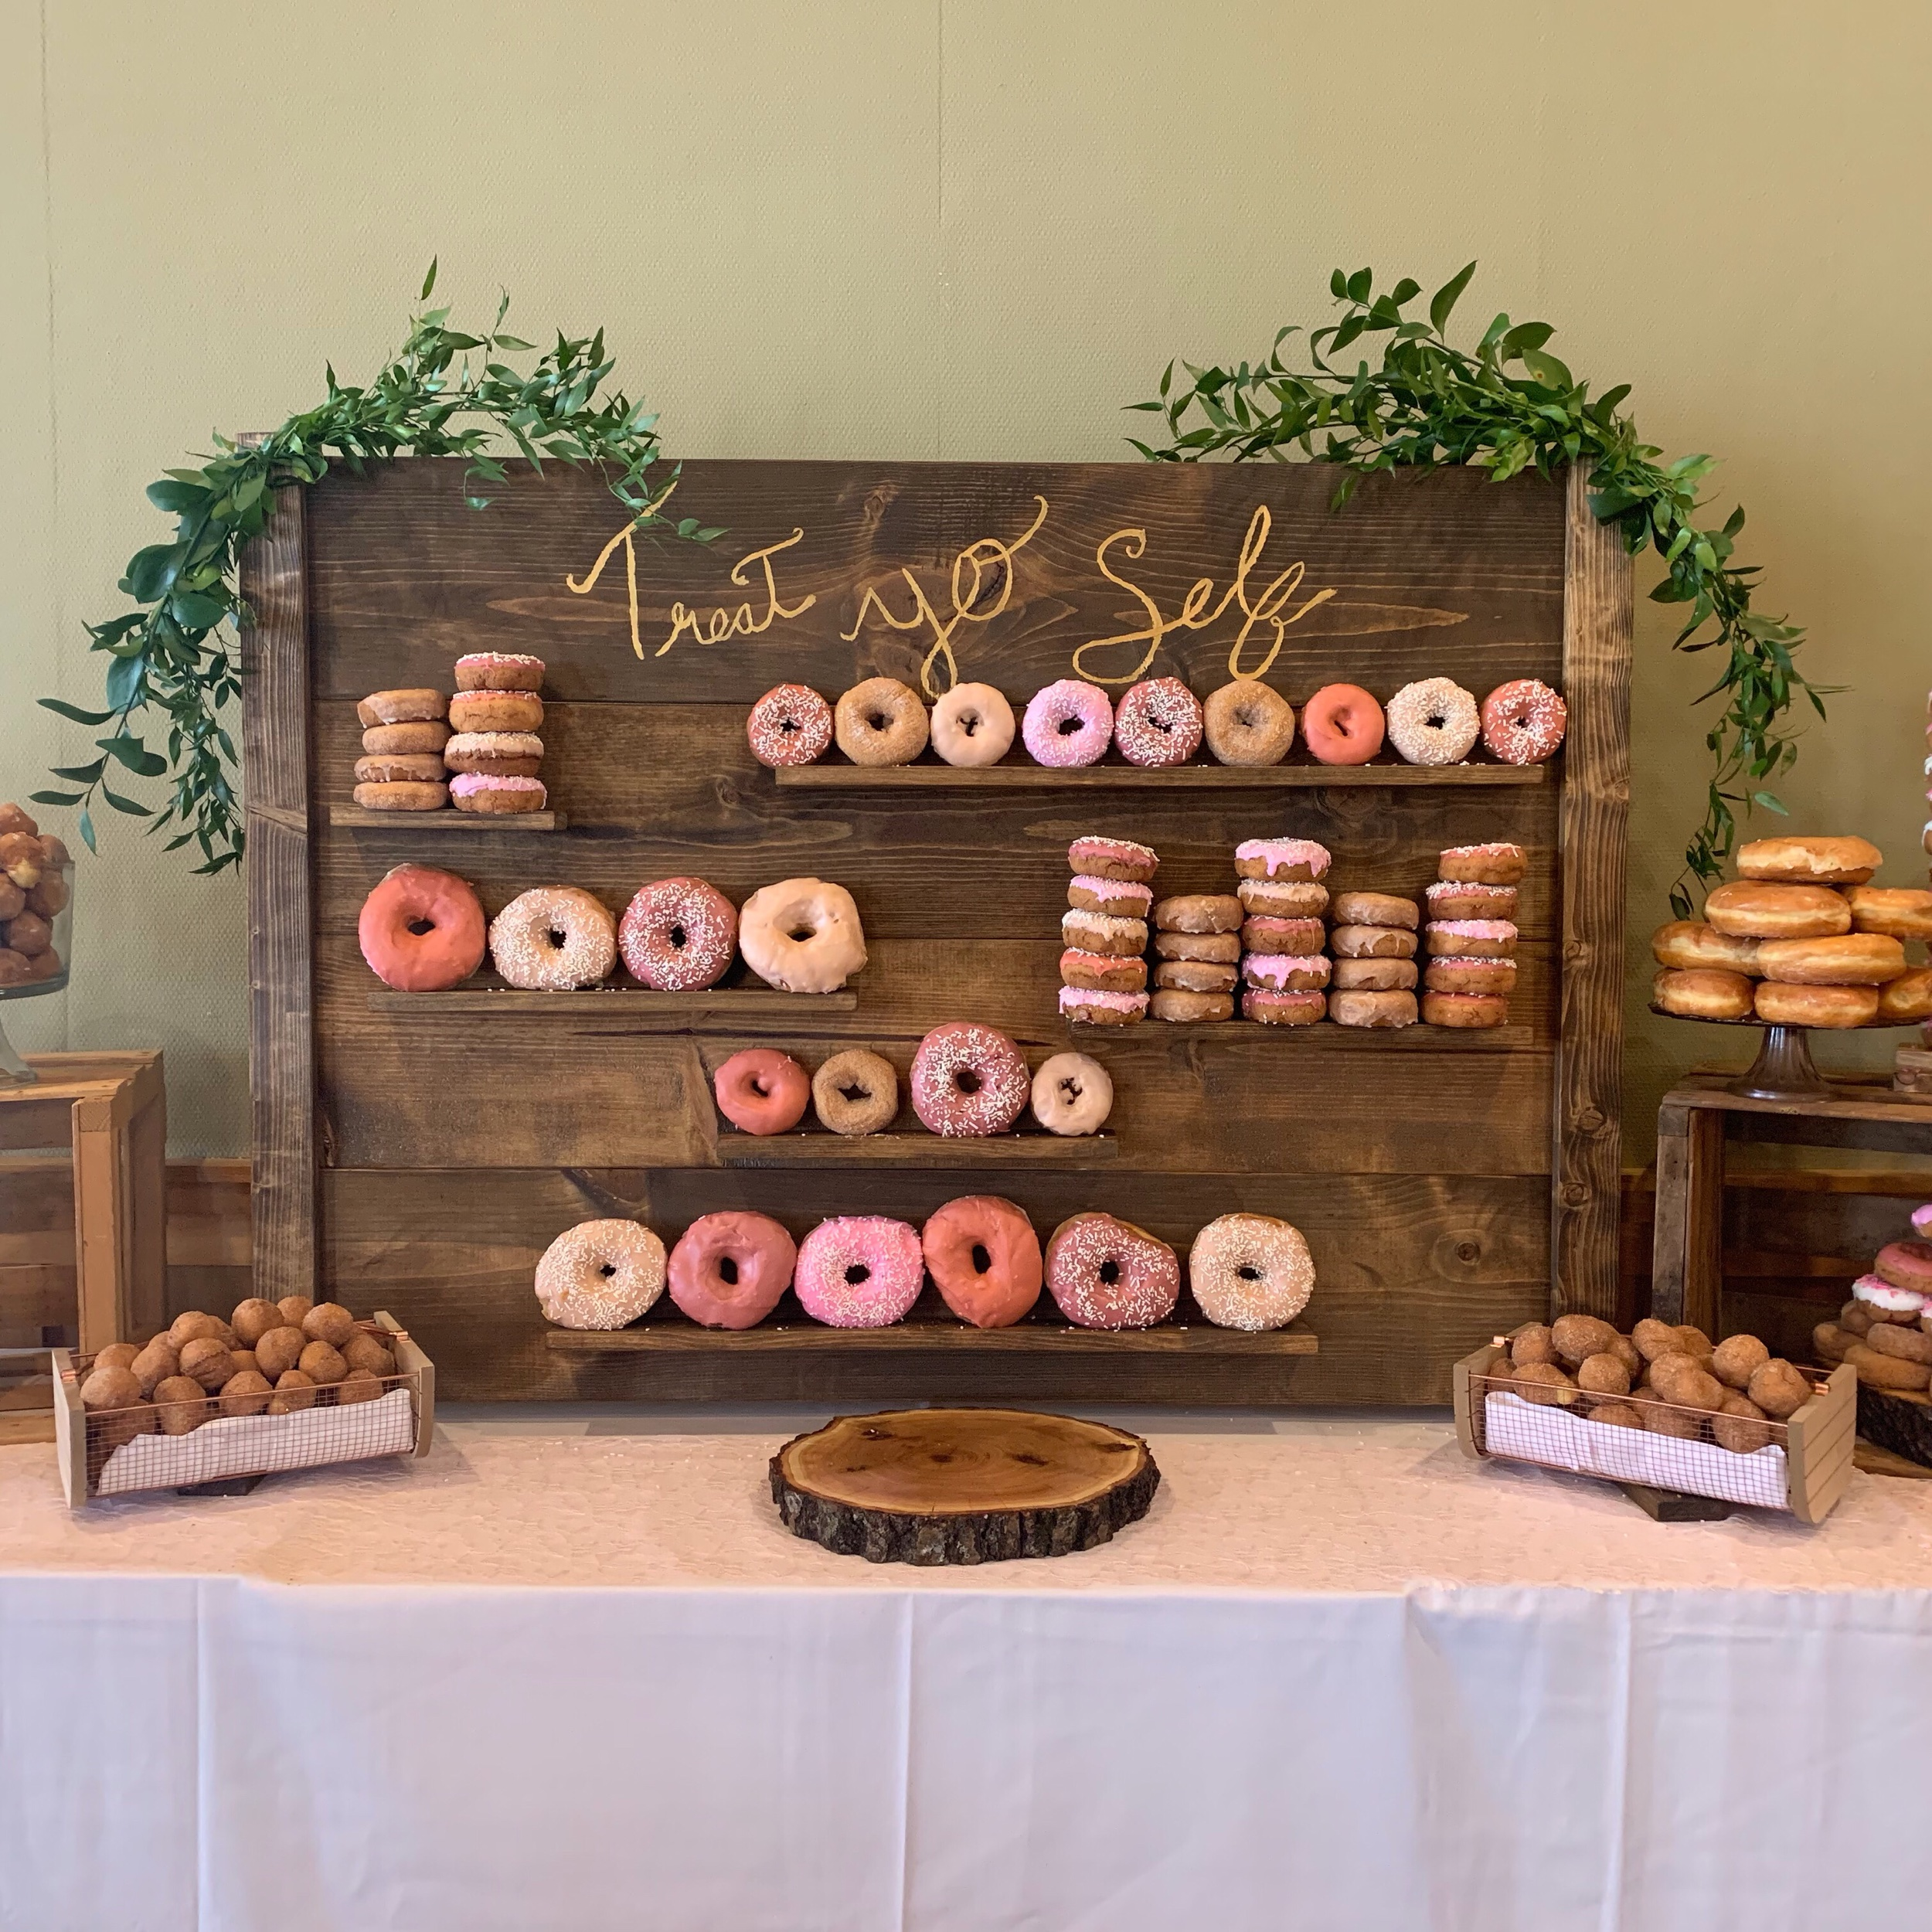 Customized Dessert Wall - You can customize the top sign to say whatever you want! 4x4 structure can fit donuts, dessert shooters, cupcakes and more! We also have cake stands to create a complete look.  $75 for the wall (includes delivery, set up and tear down with in 25 miles of Minneapolis) Outside of that add a delivery fee $25-$50  add $25 to customize the signage  add $25 for extra cake stands